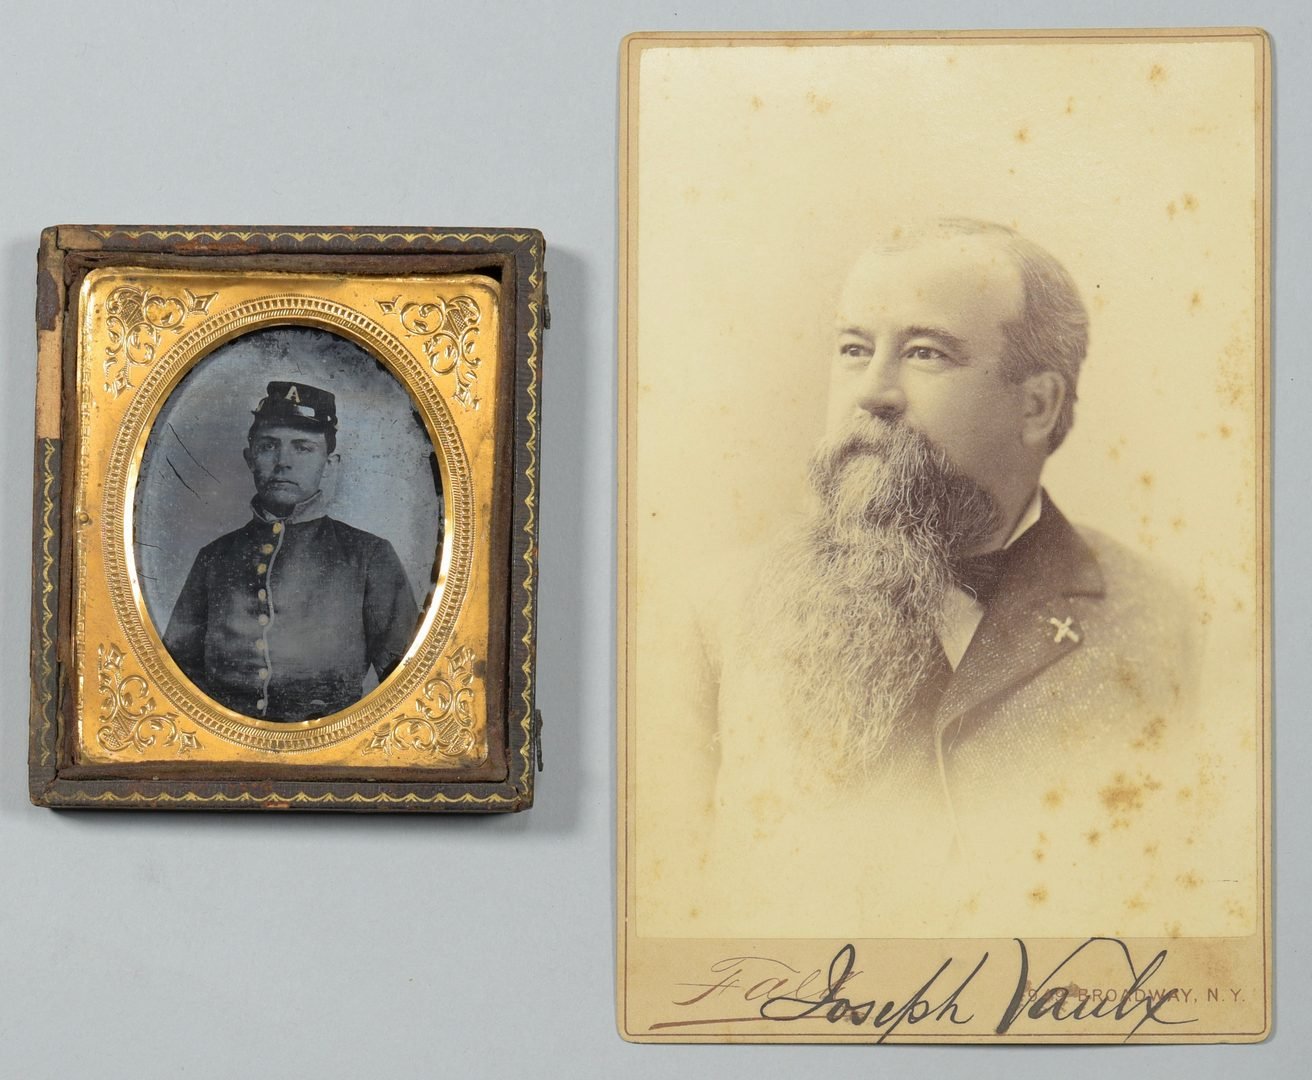 Lot 283: CSA Ambrotype, Signed Vaulx Photo, Broadside